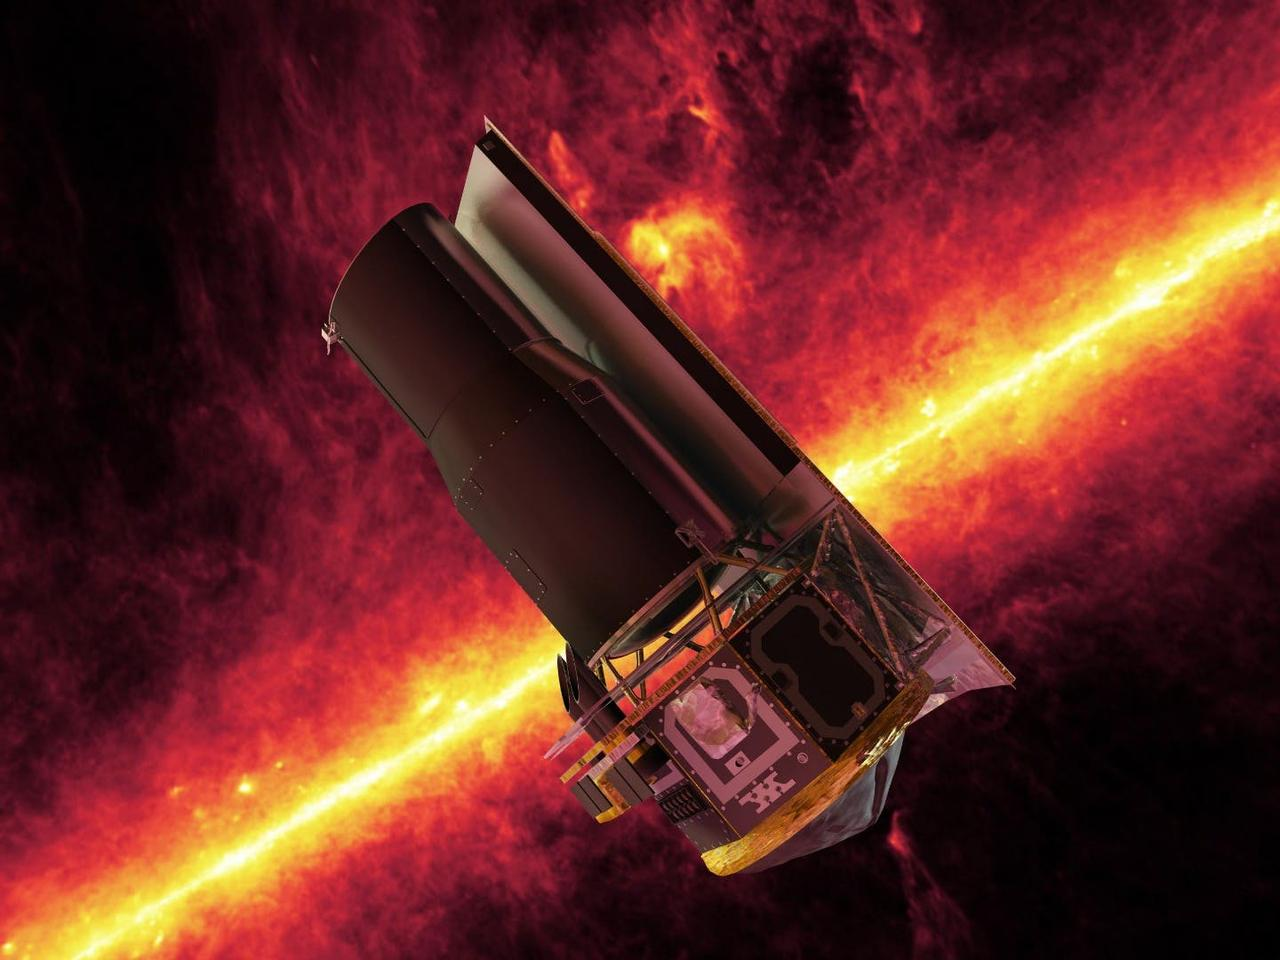 Artist's concept of the Spitzer Space Telescope